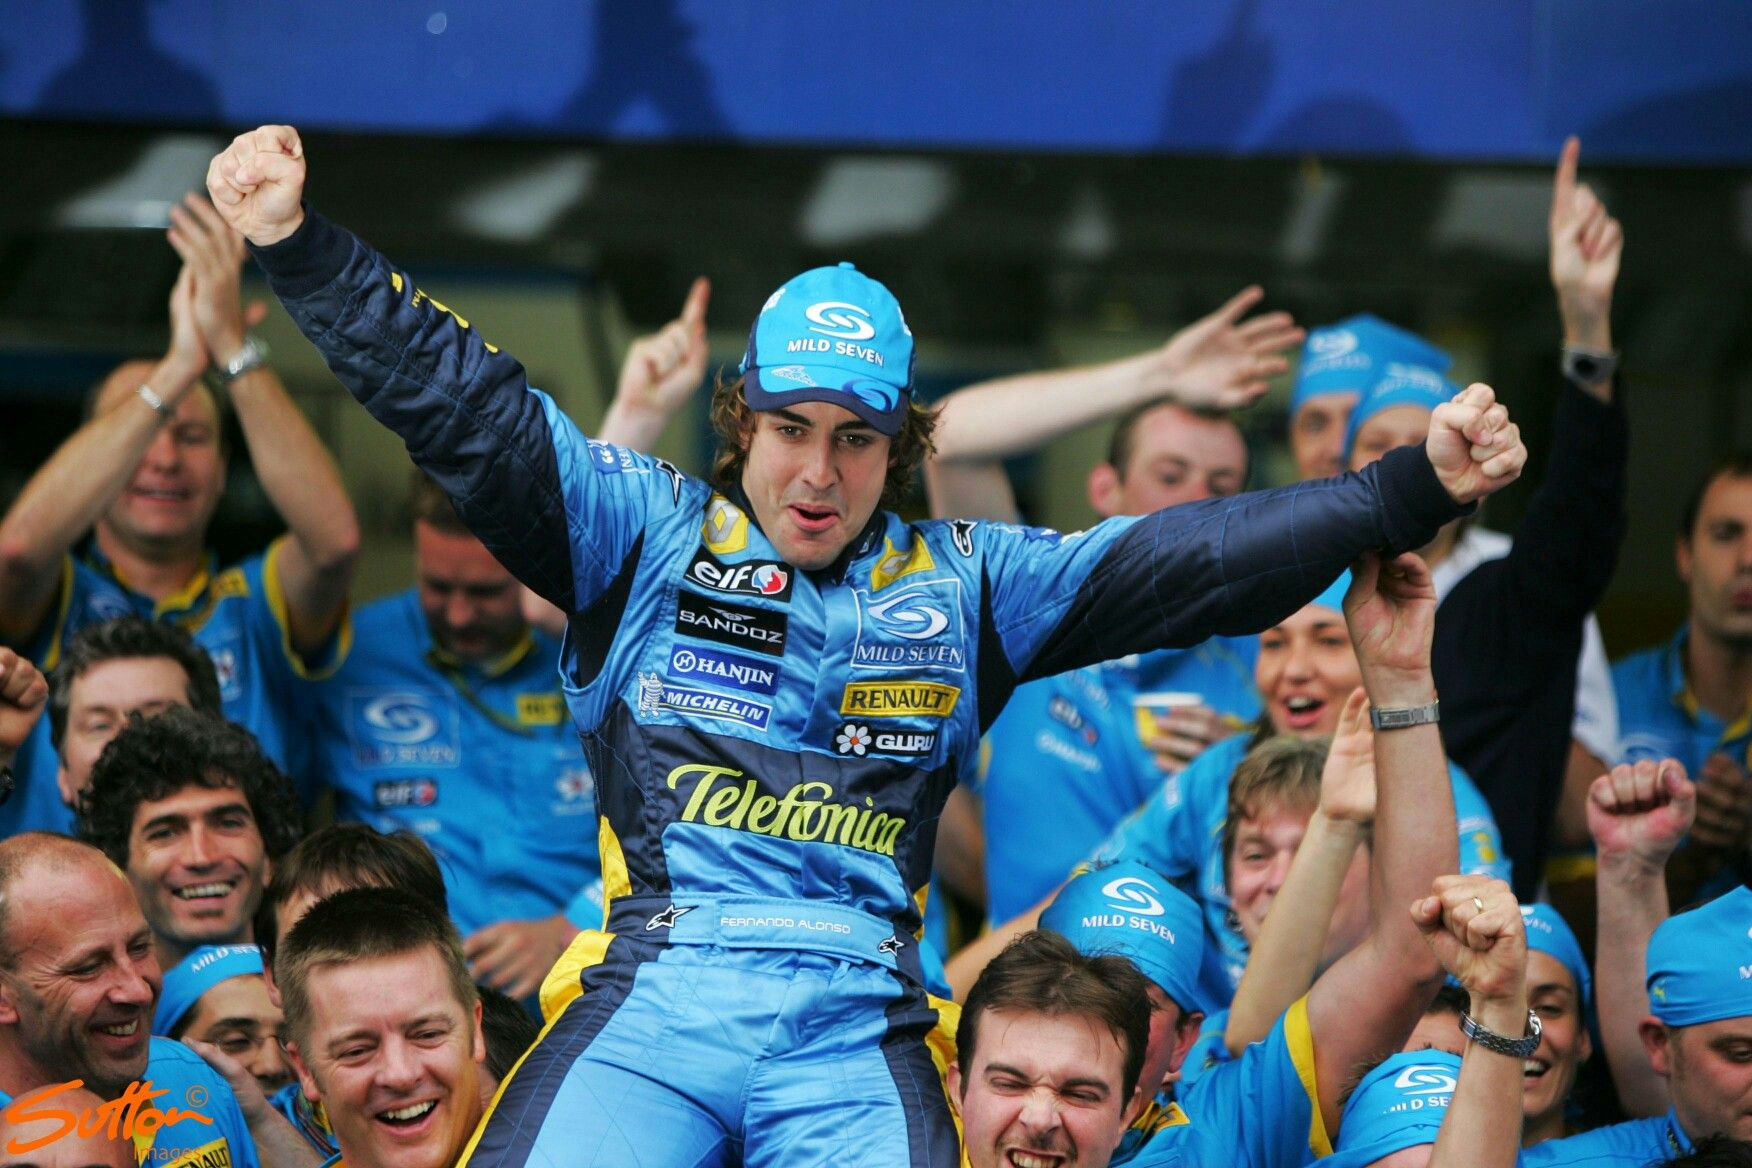 25th September 2005 Fernando Alonso took his first F1 World Championship for Renault